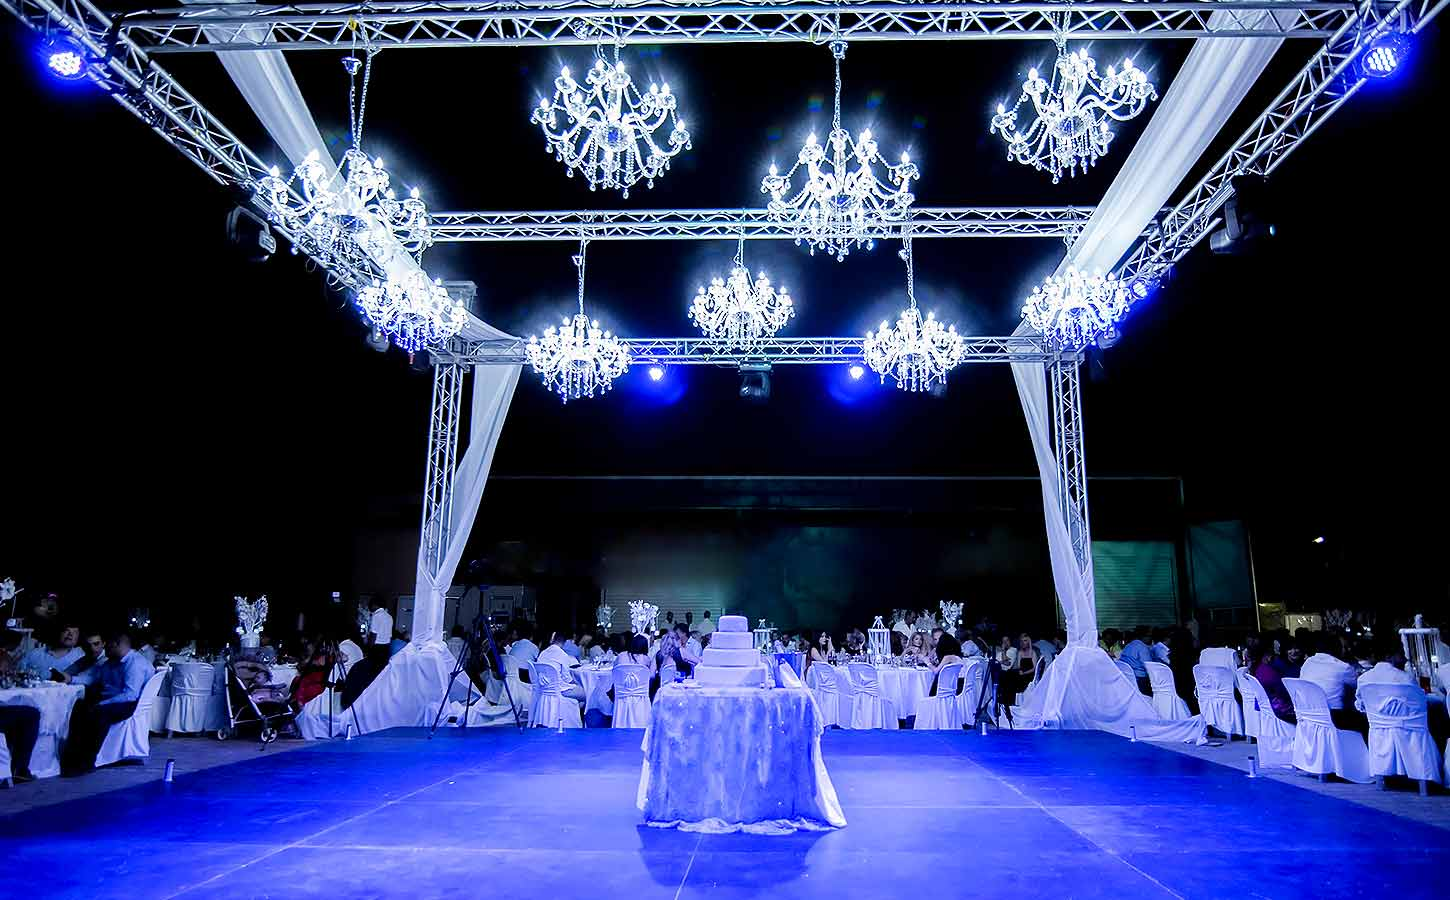 lighting-with-chandeliers-and-blue-lights-by-luxury-events